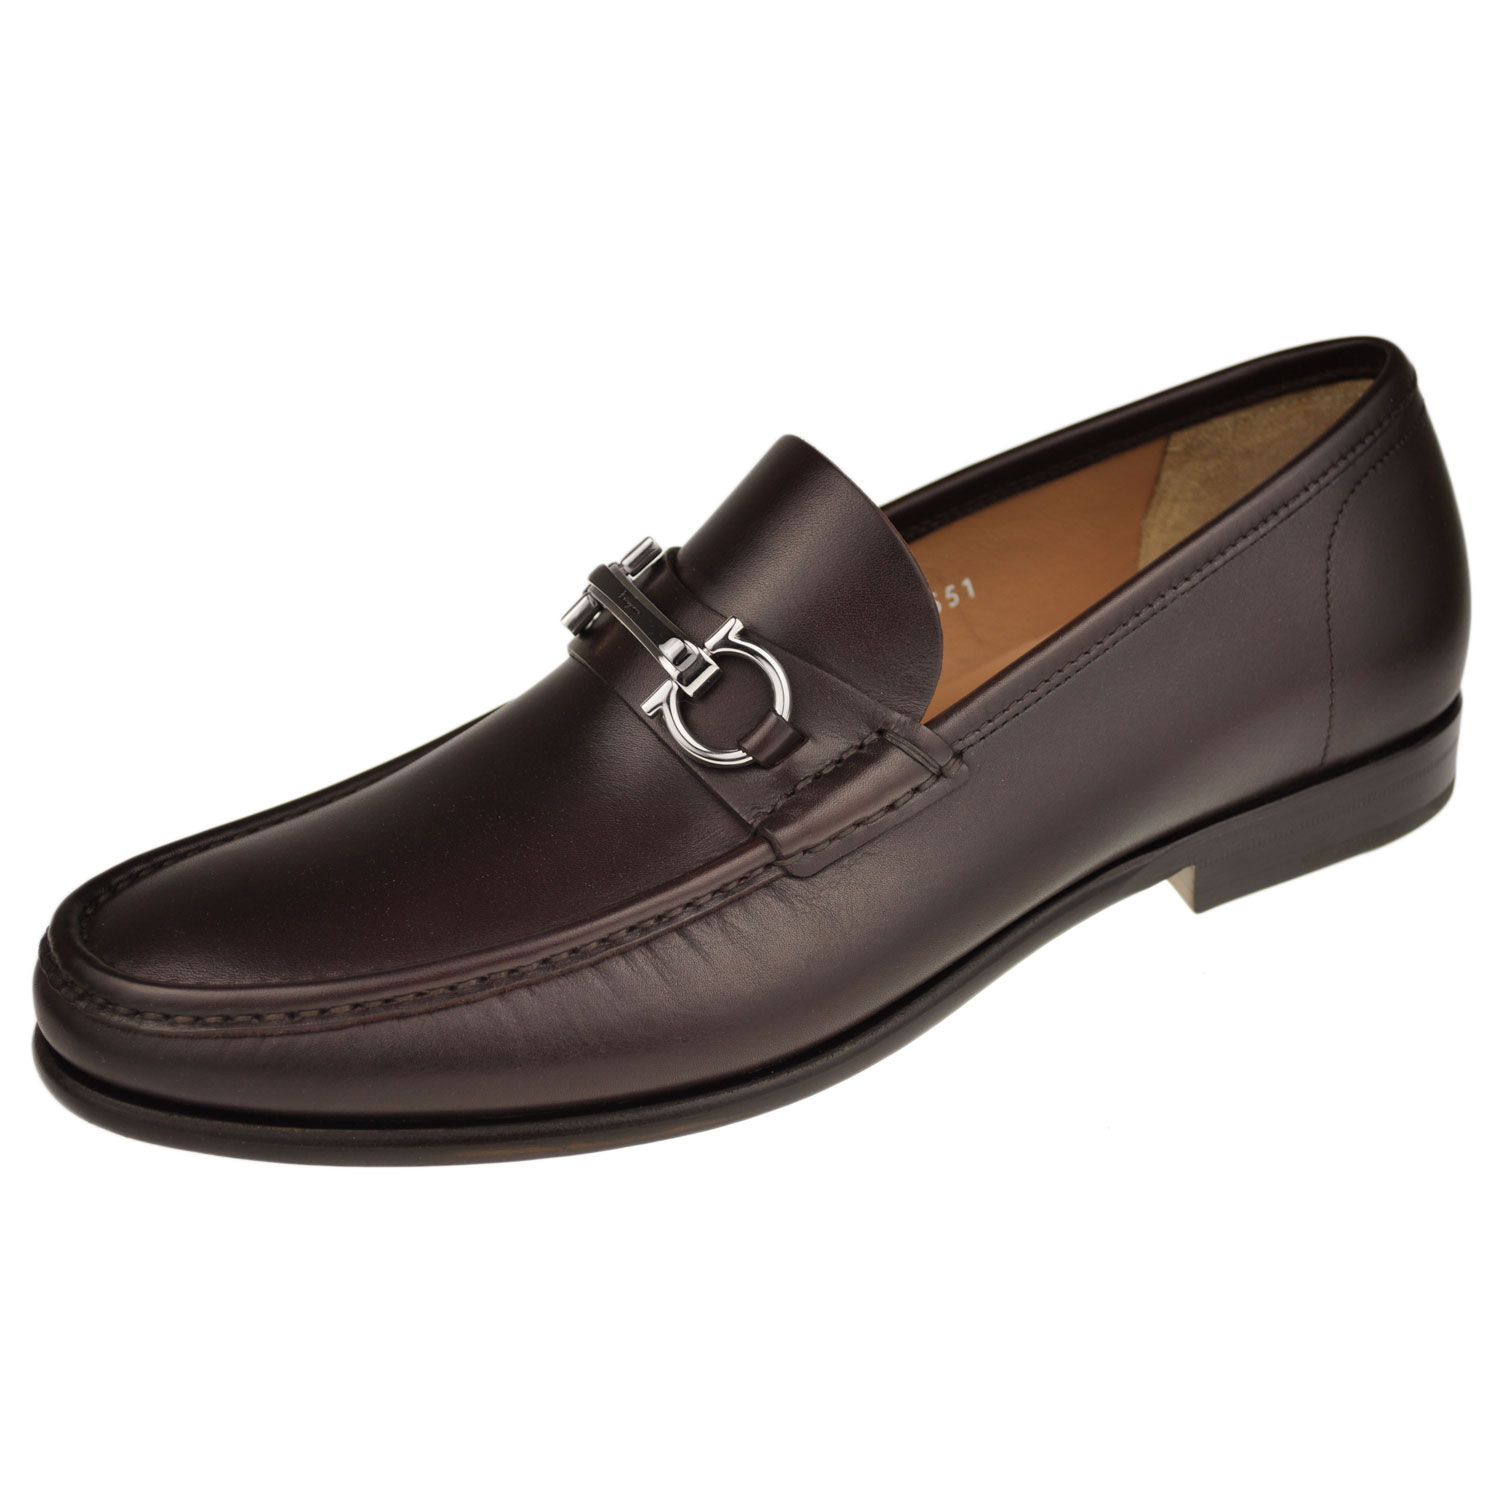 Salvatore Ferragamo Men's Shoes Raffaele Gancini Bit ...